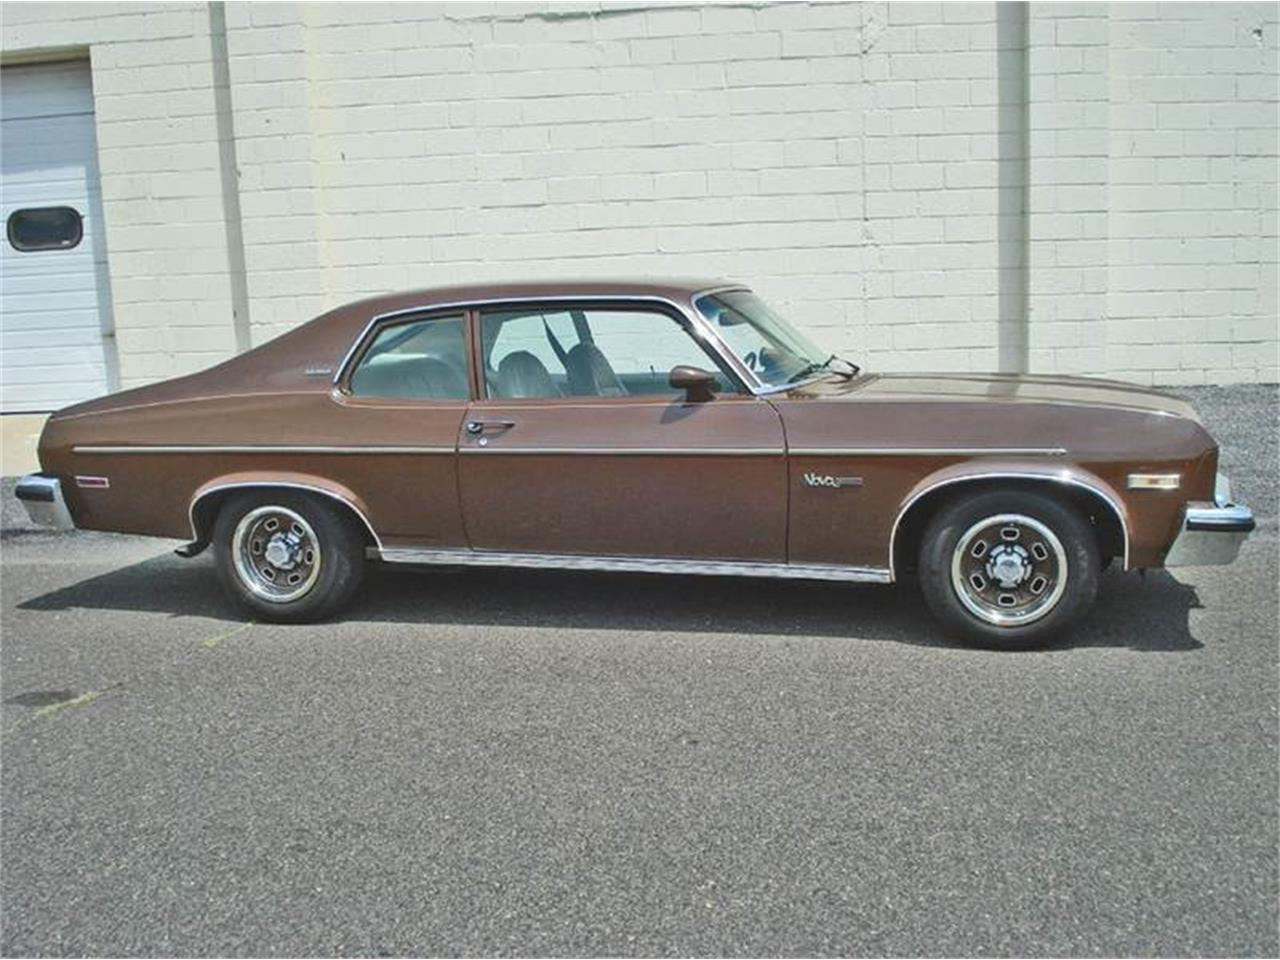 Large Picture of '73 Chevrolet Nova located in New Jersey - $12,900.00 Offered by C & C Auto Sales - LHTJ